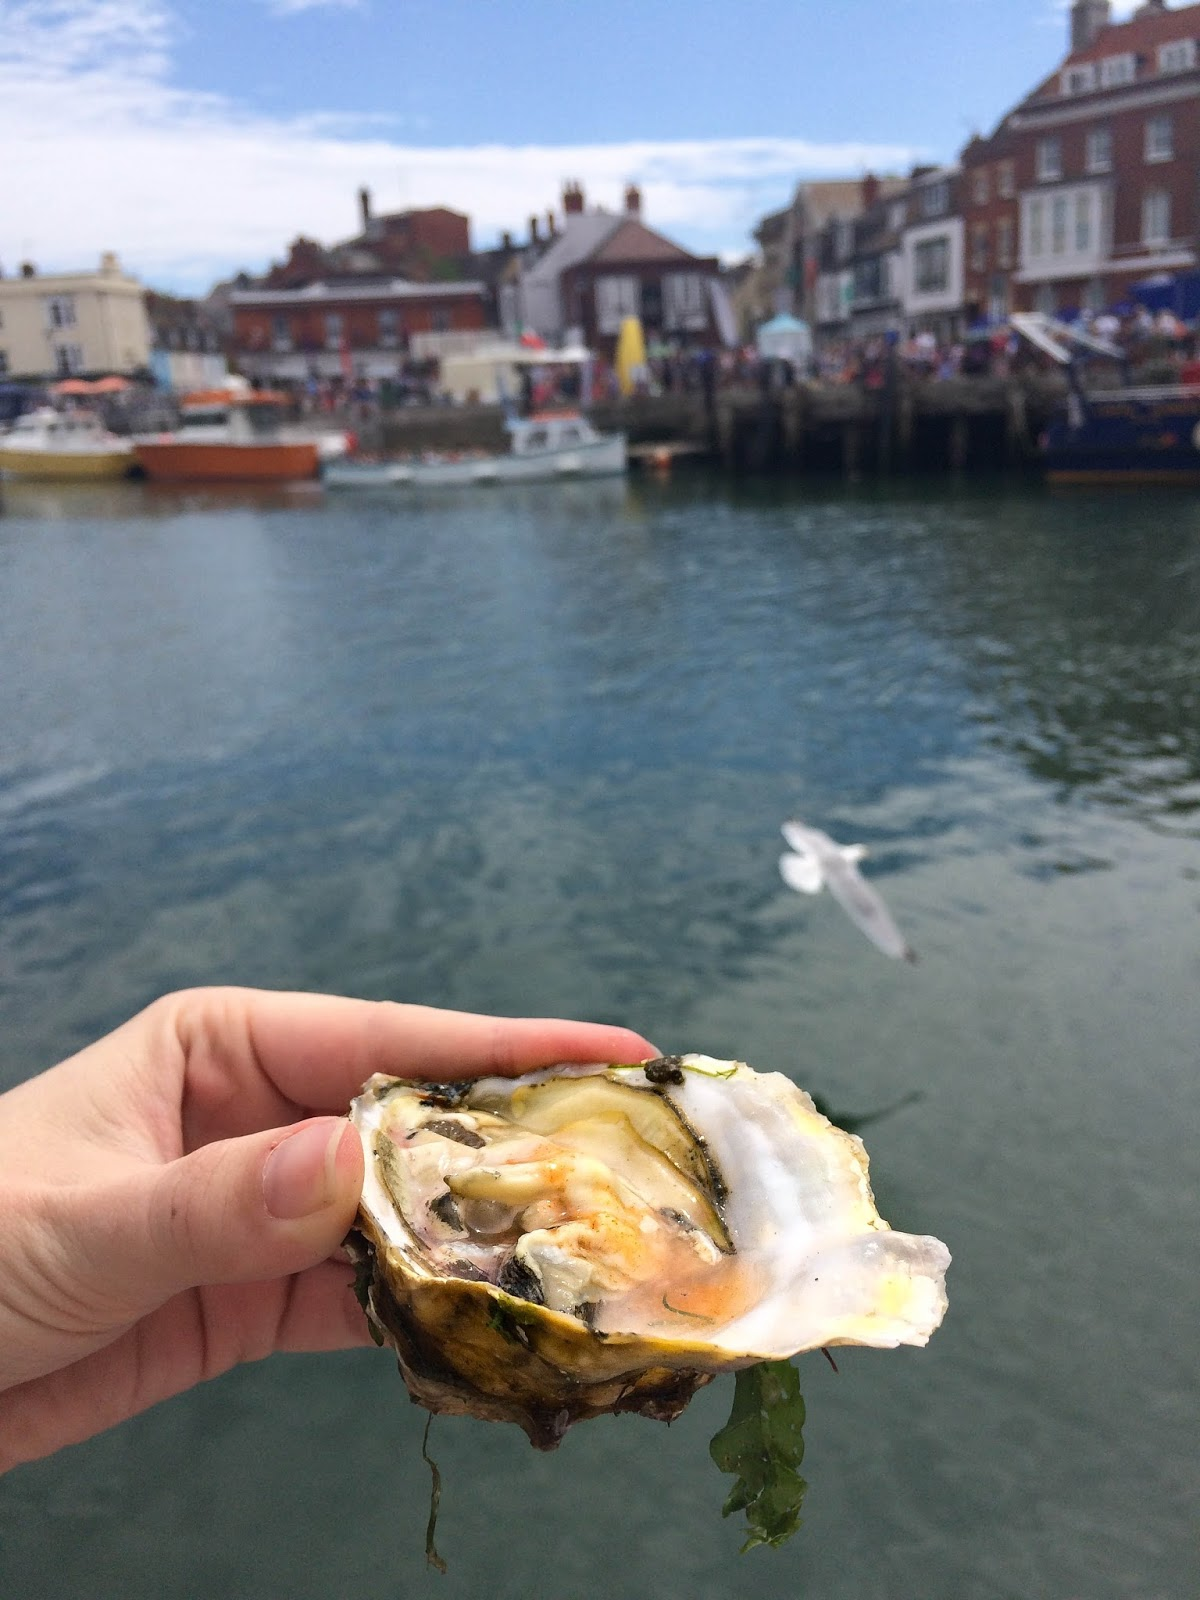 Pommery Dorset Seafood Festival in Weymouth, oysters, street food, food bloggers, lifestyle bloggers